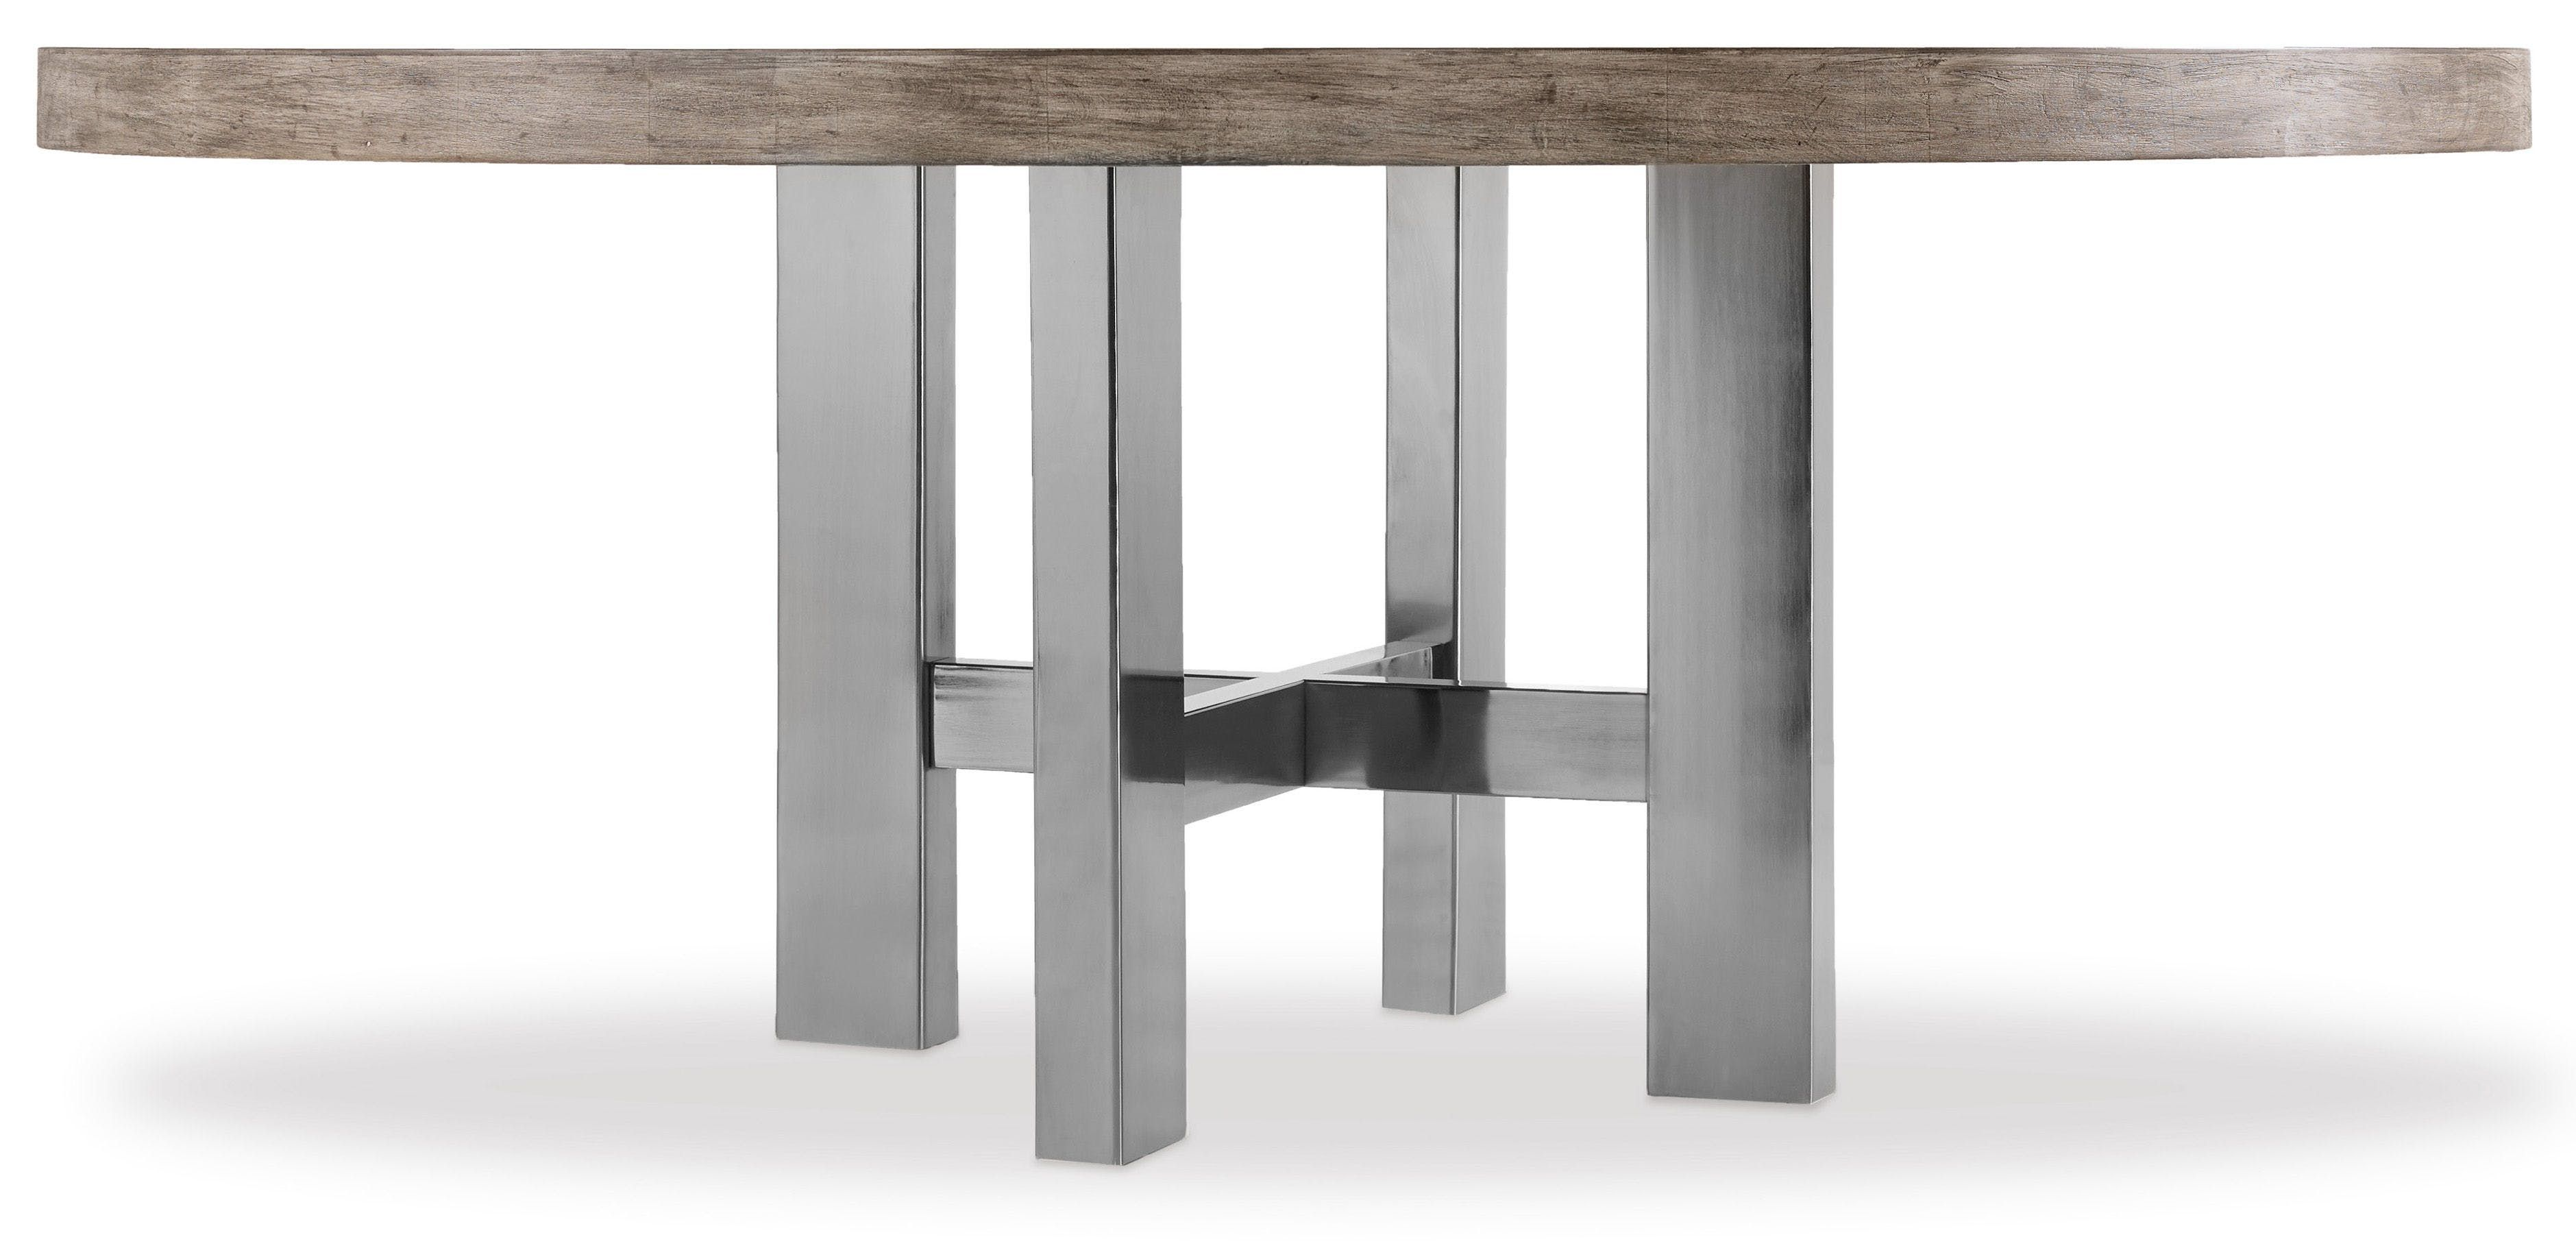 72 inch and 62 inch round dining tables combine the mountain modern finish on top with a plated black nickel base